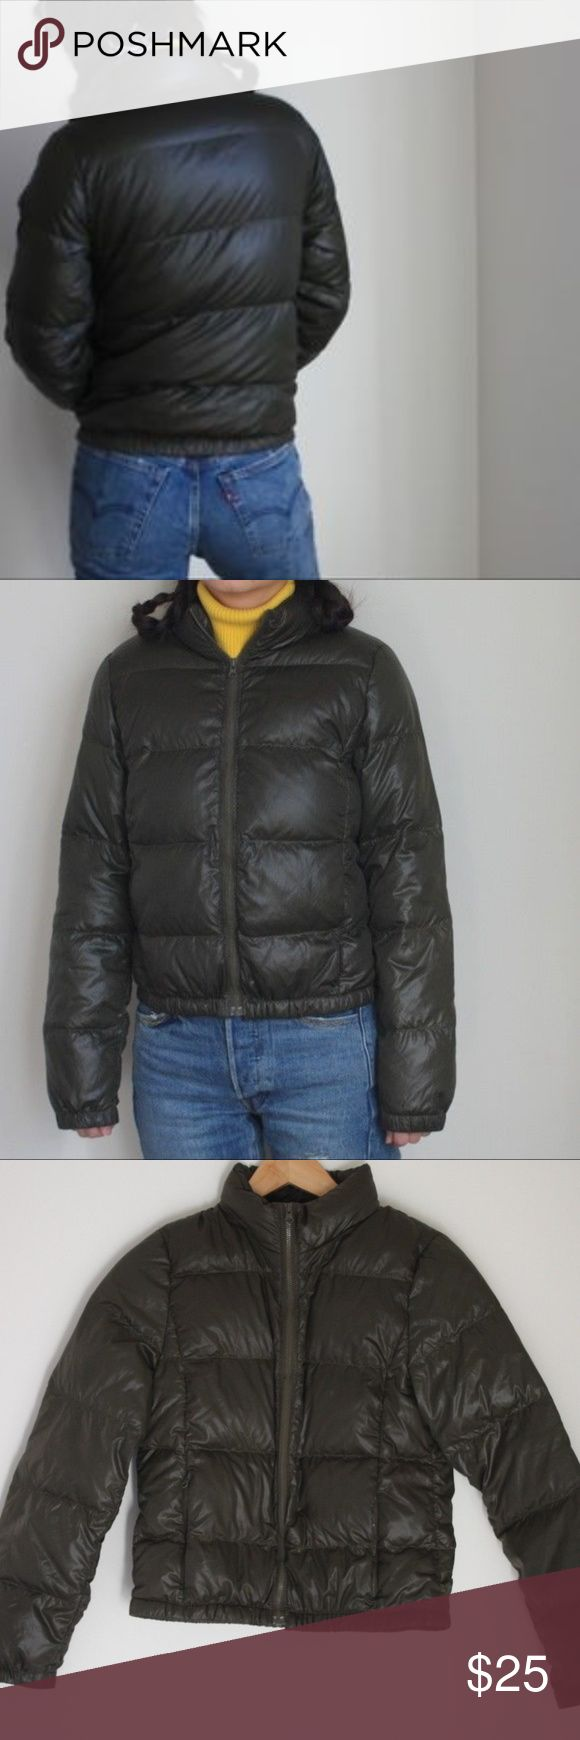 J. Crew Down Puffer Jacket Army Green Small Details:  •Small collapsable Nylon hood that zips into collar •Warm puffer jacket in good condition, great for fall or layered with a sweater for winter.  Materials:   •Lining: 100% Nylon •Fill: Minimum of 80% Down •Remainder: Waterfowl Feathers  Condition:  •Good used condition J. Crew Jackets & Coats Puffers